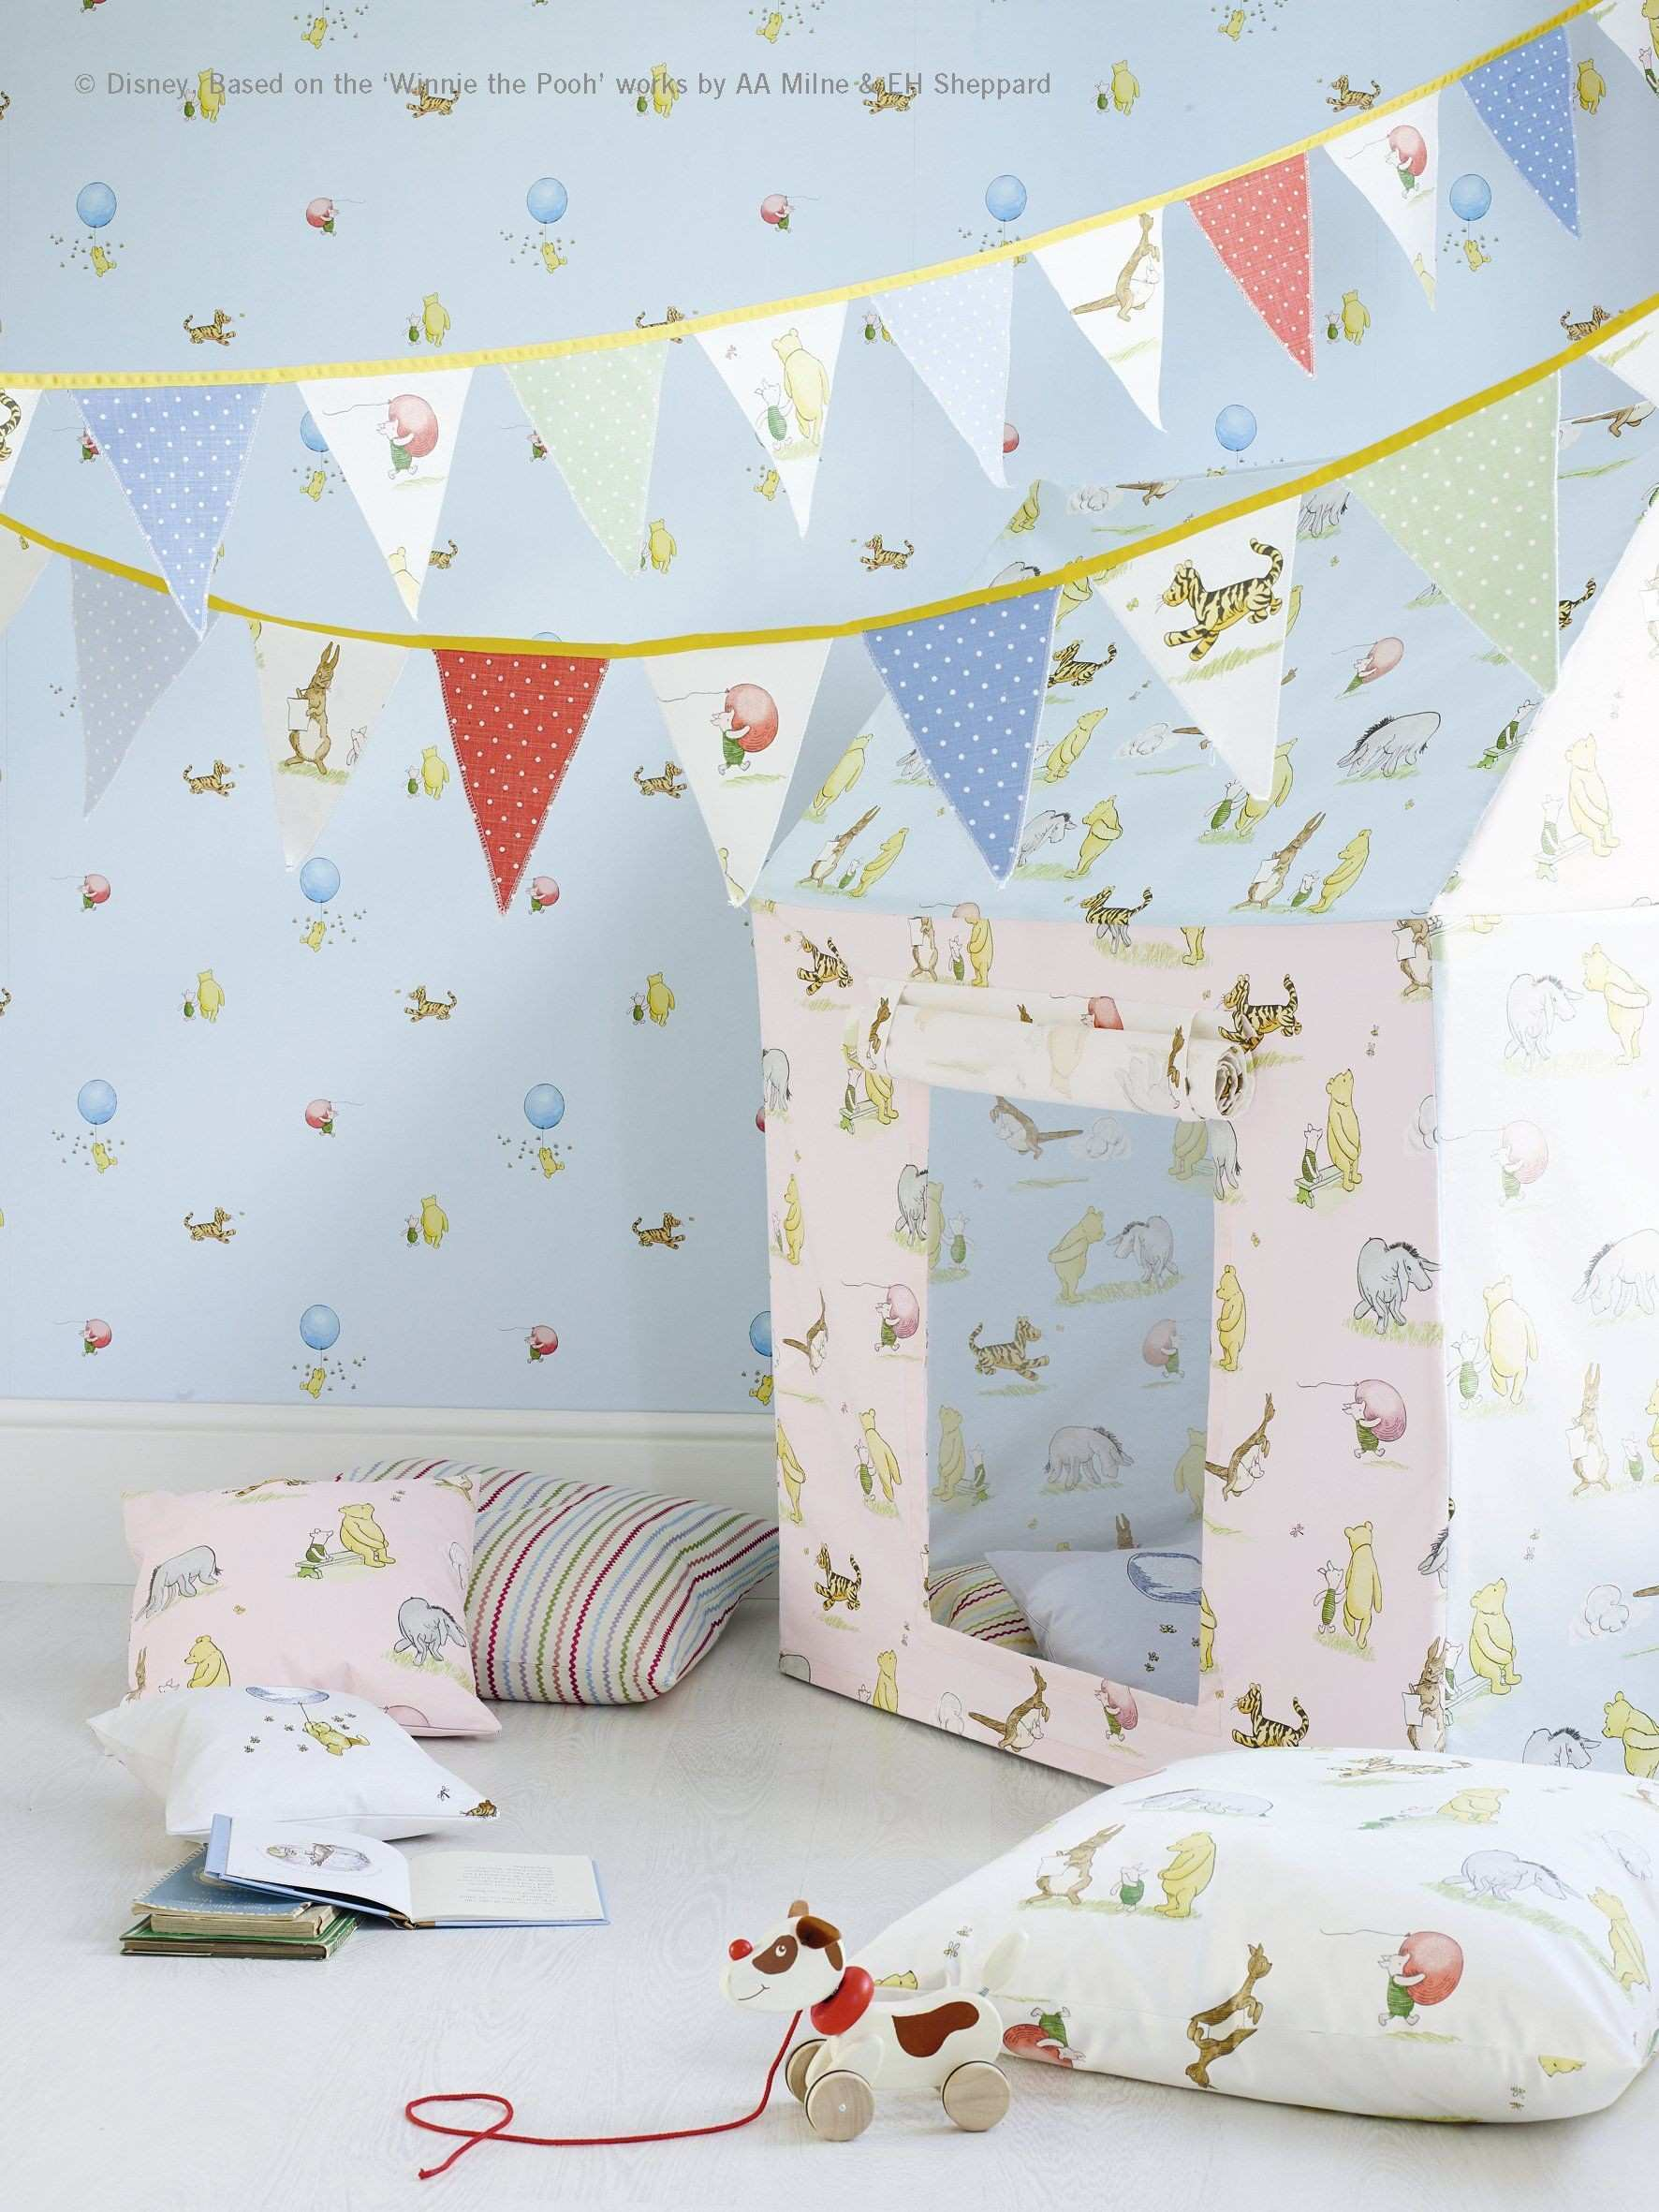 Fabrics and wallpaper from the Nursery Tales Collection by Jane